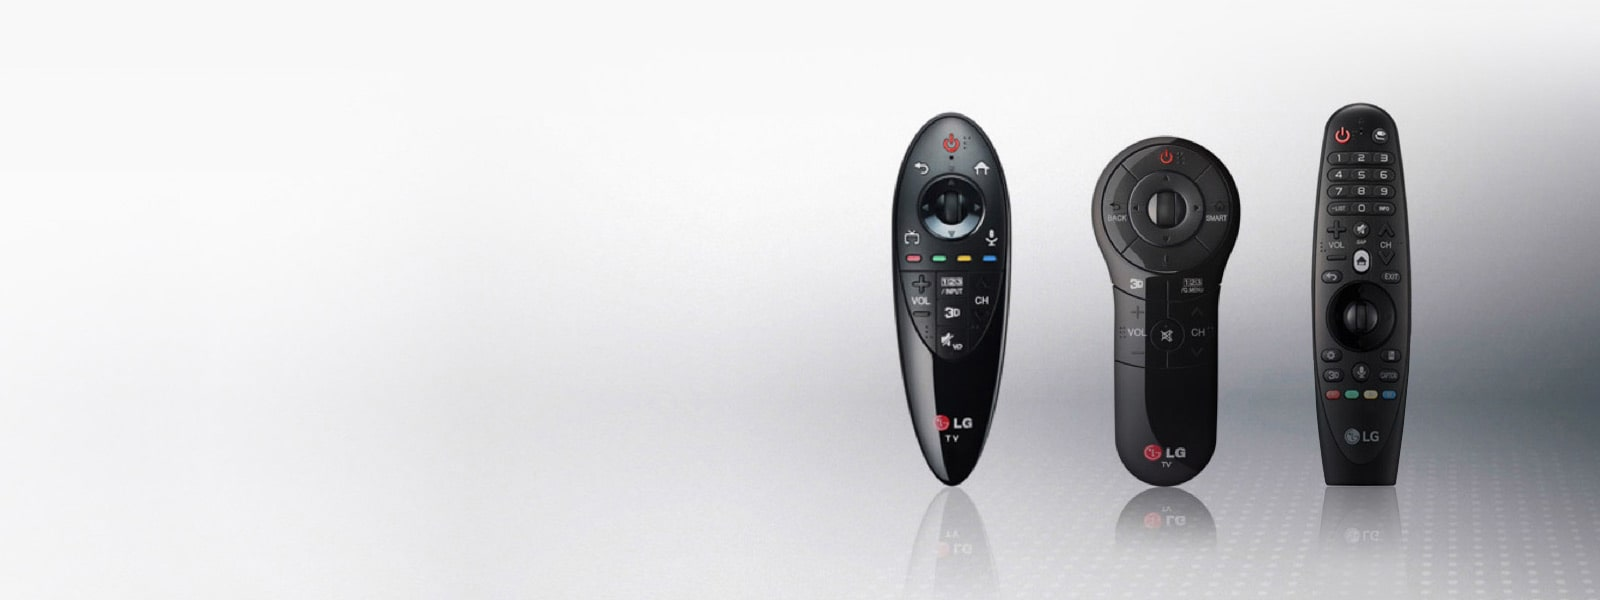 LG Magic Remote: The Voice Remote for LG AI Smart TVs | LG USA